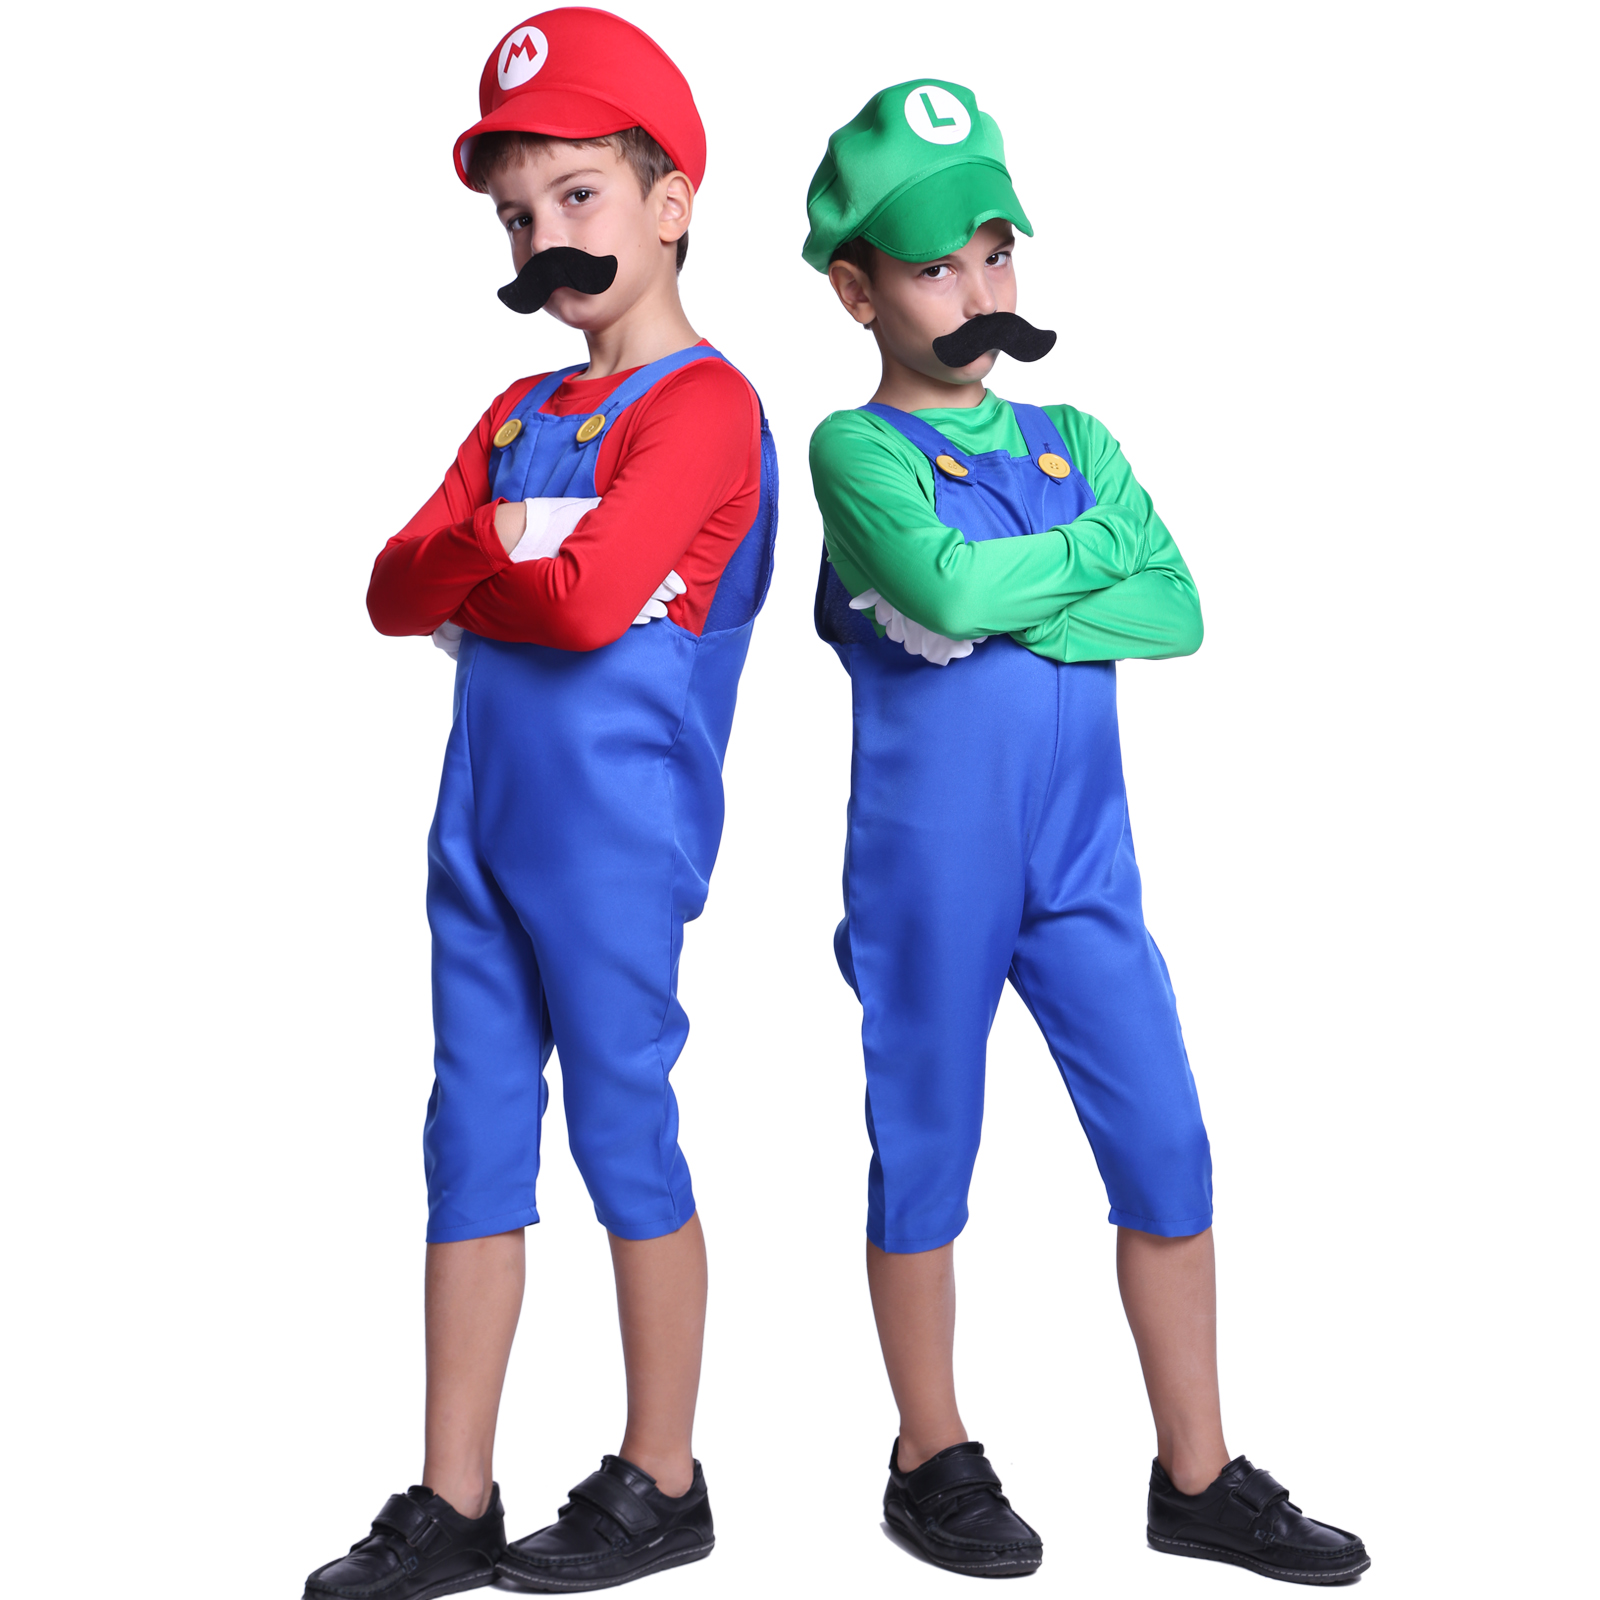 Item specifics  sc 1 st  eBay & Kids Boys Super Mario Luigi Brother Plumber Nintendo Game Cosplay ...